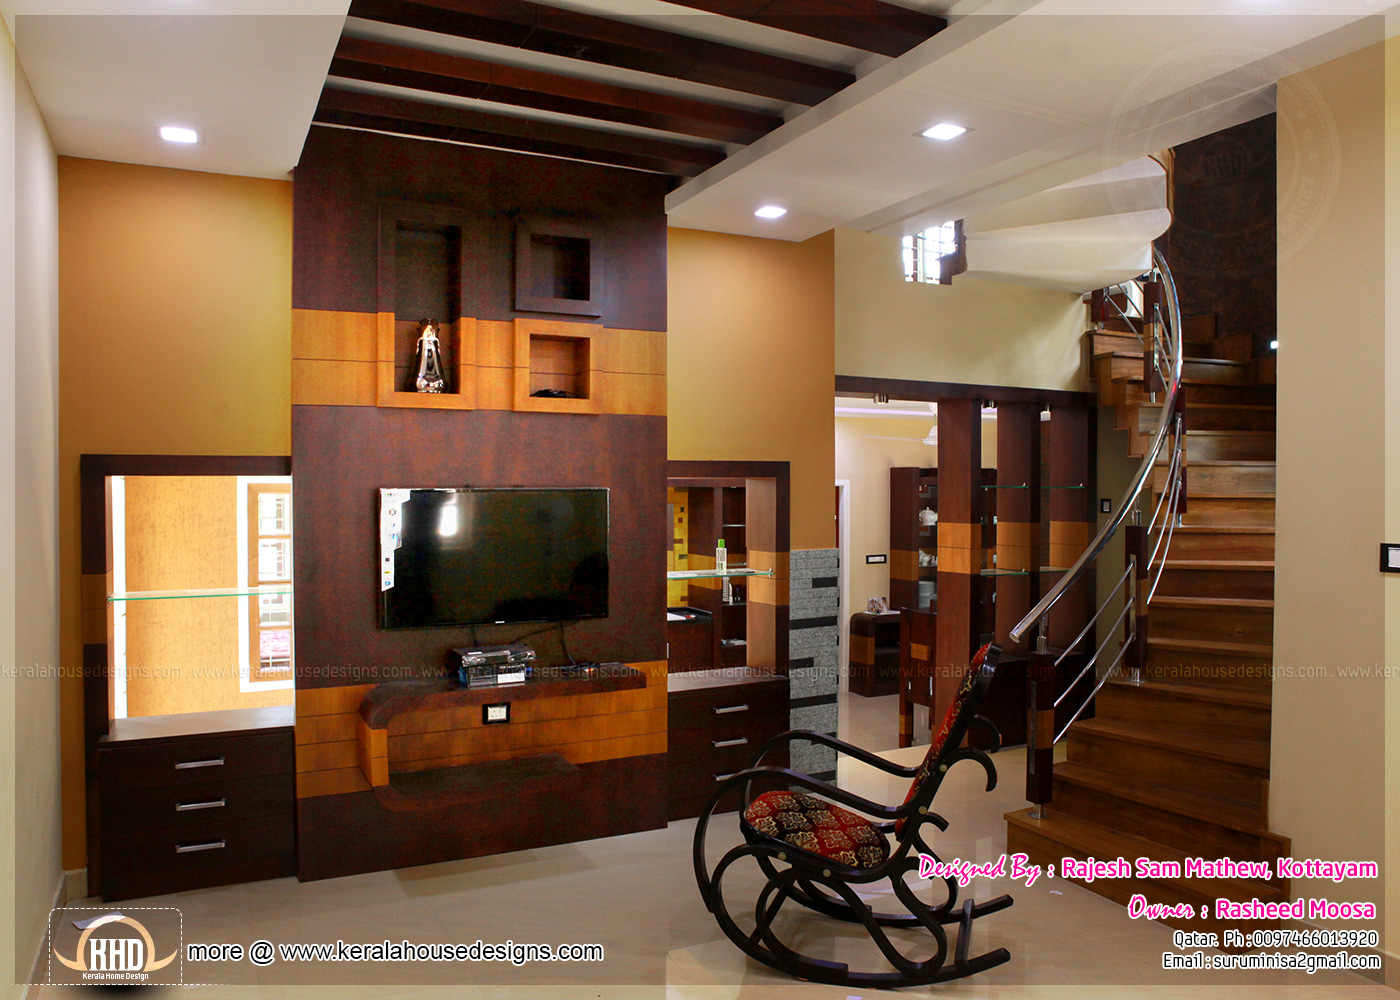 Interior Design Ideas For Small Indian Homes Kerala Interior Design With Photos Kerala Home Design